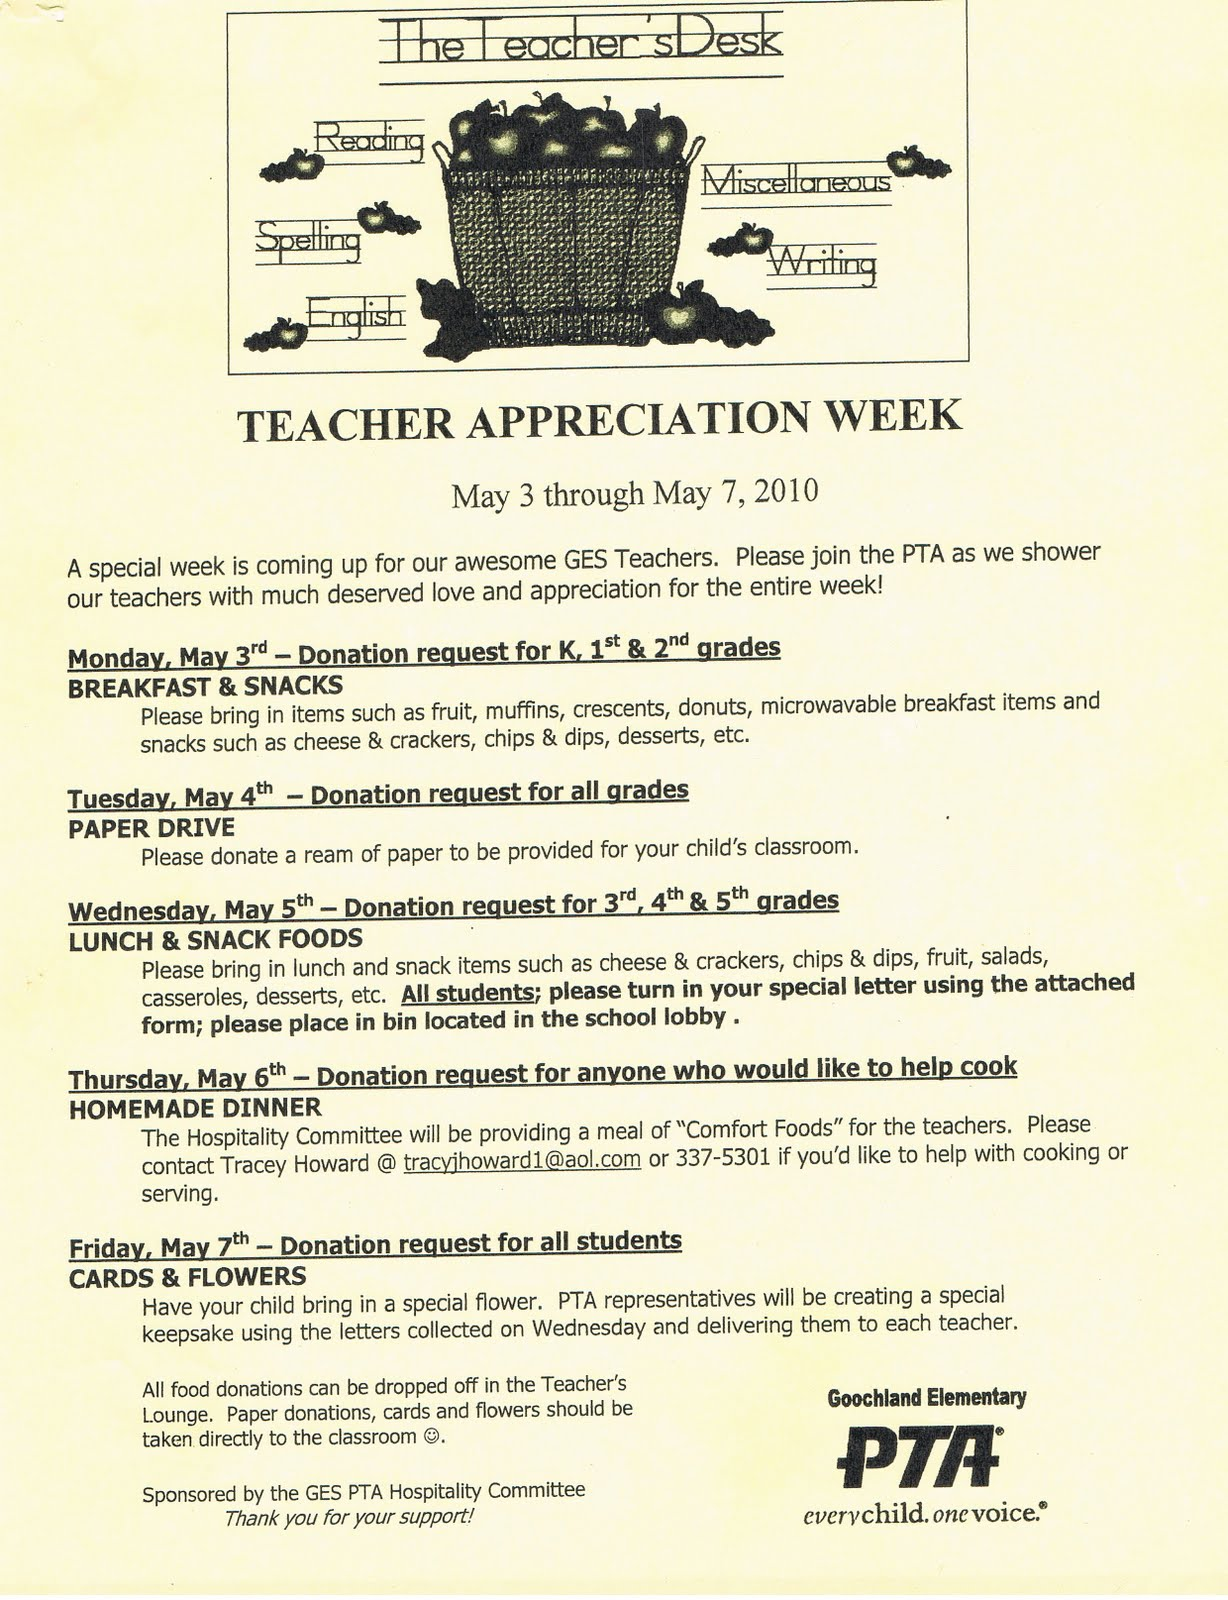 GES PTA HOSPITALITY COMMITTEE: TEACHER APPRECIATION WEEK